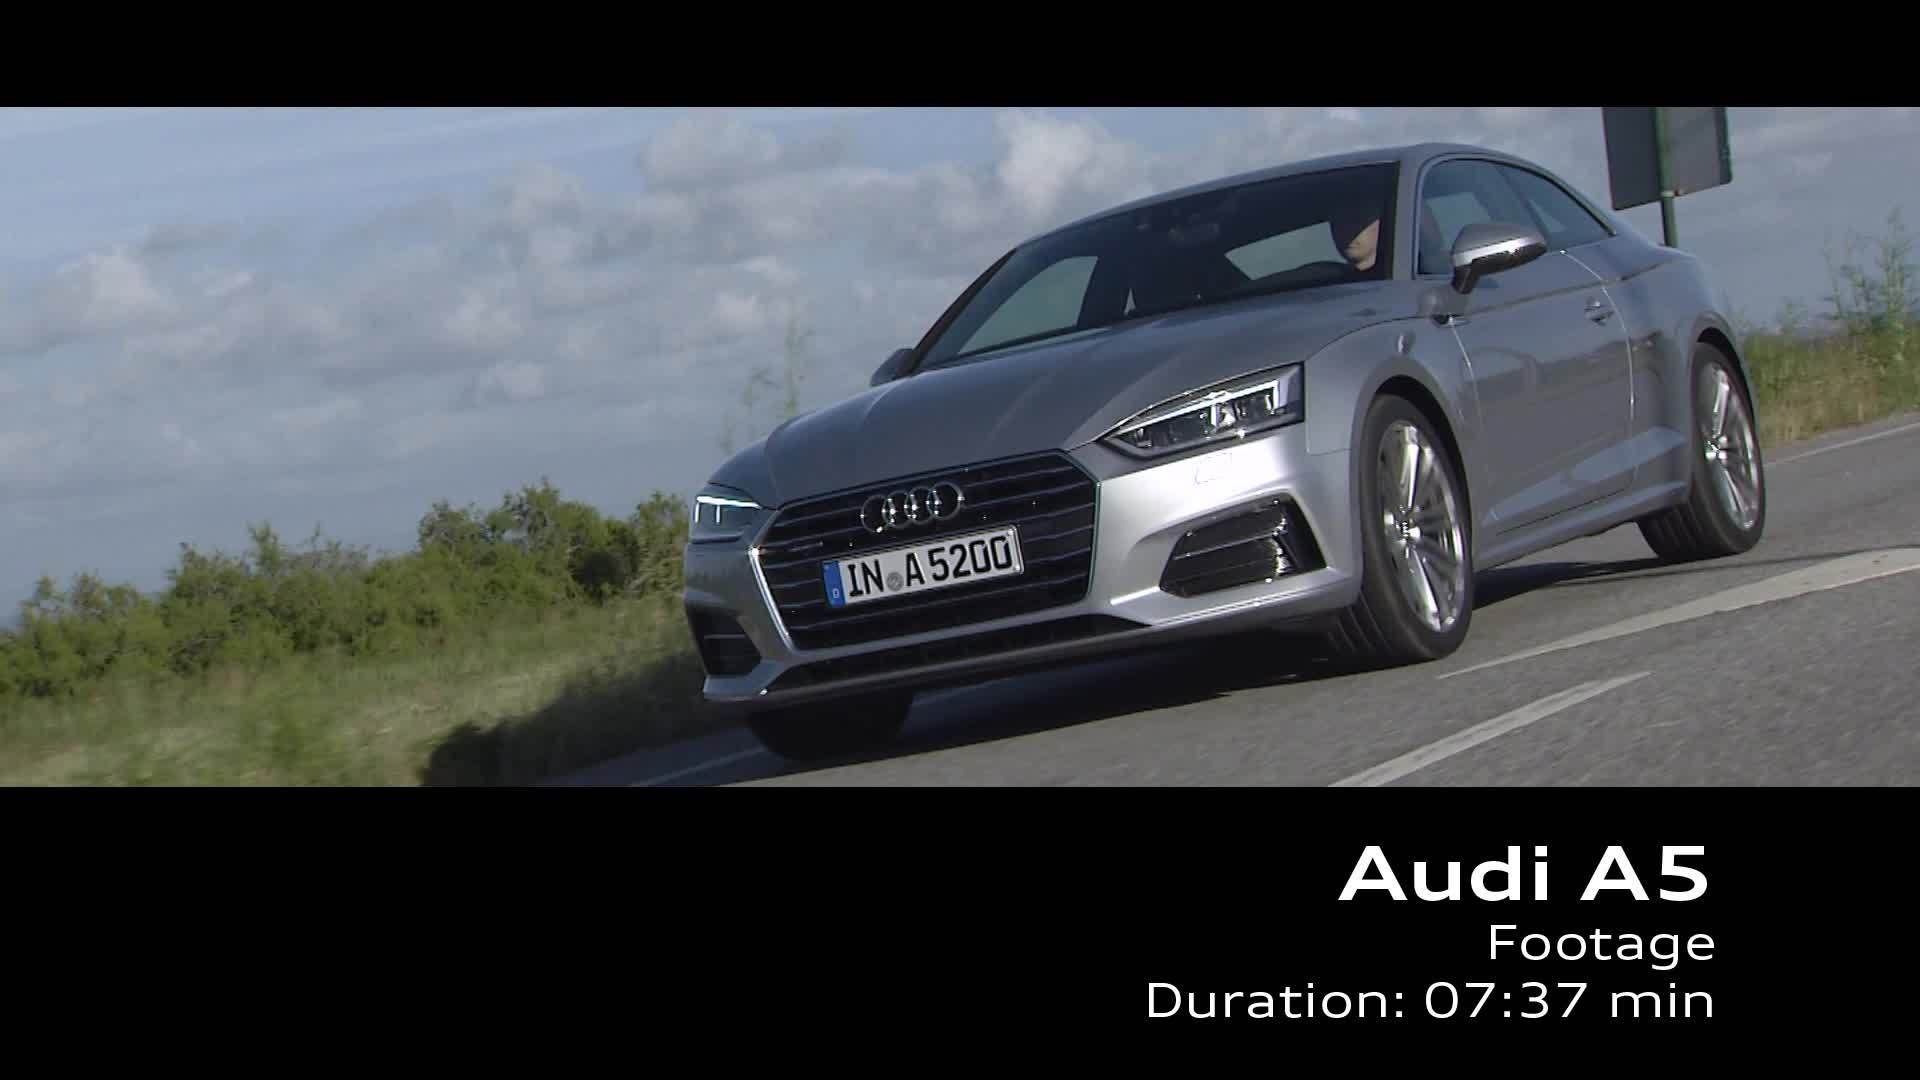 Audi A5 Coupé – Footage on Location